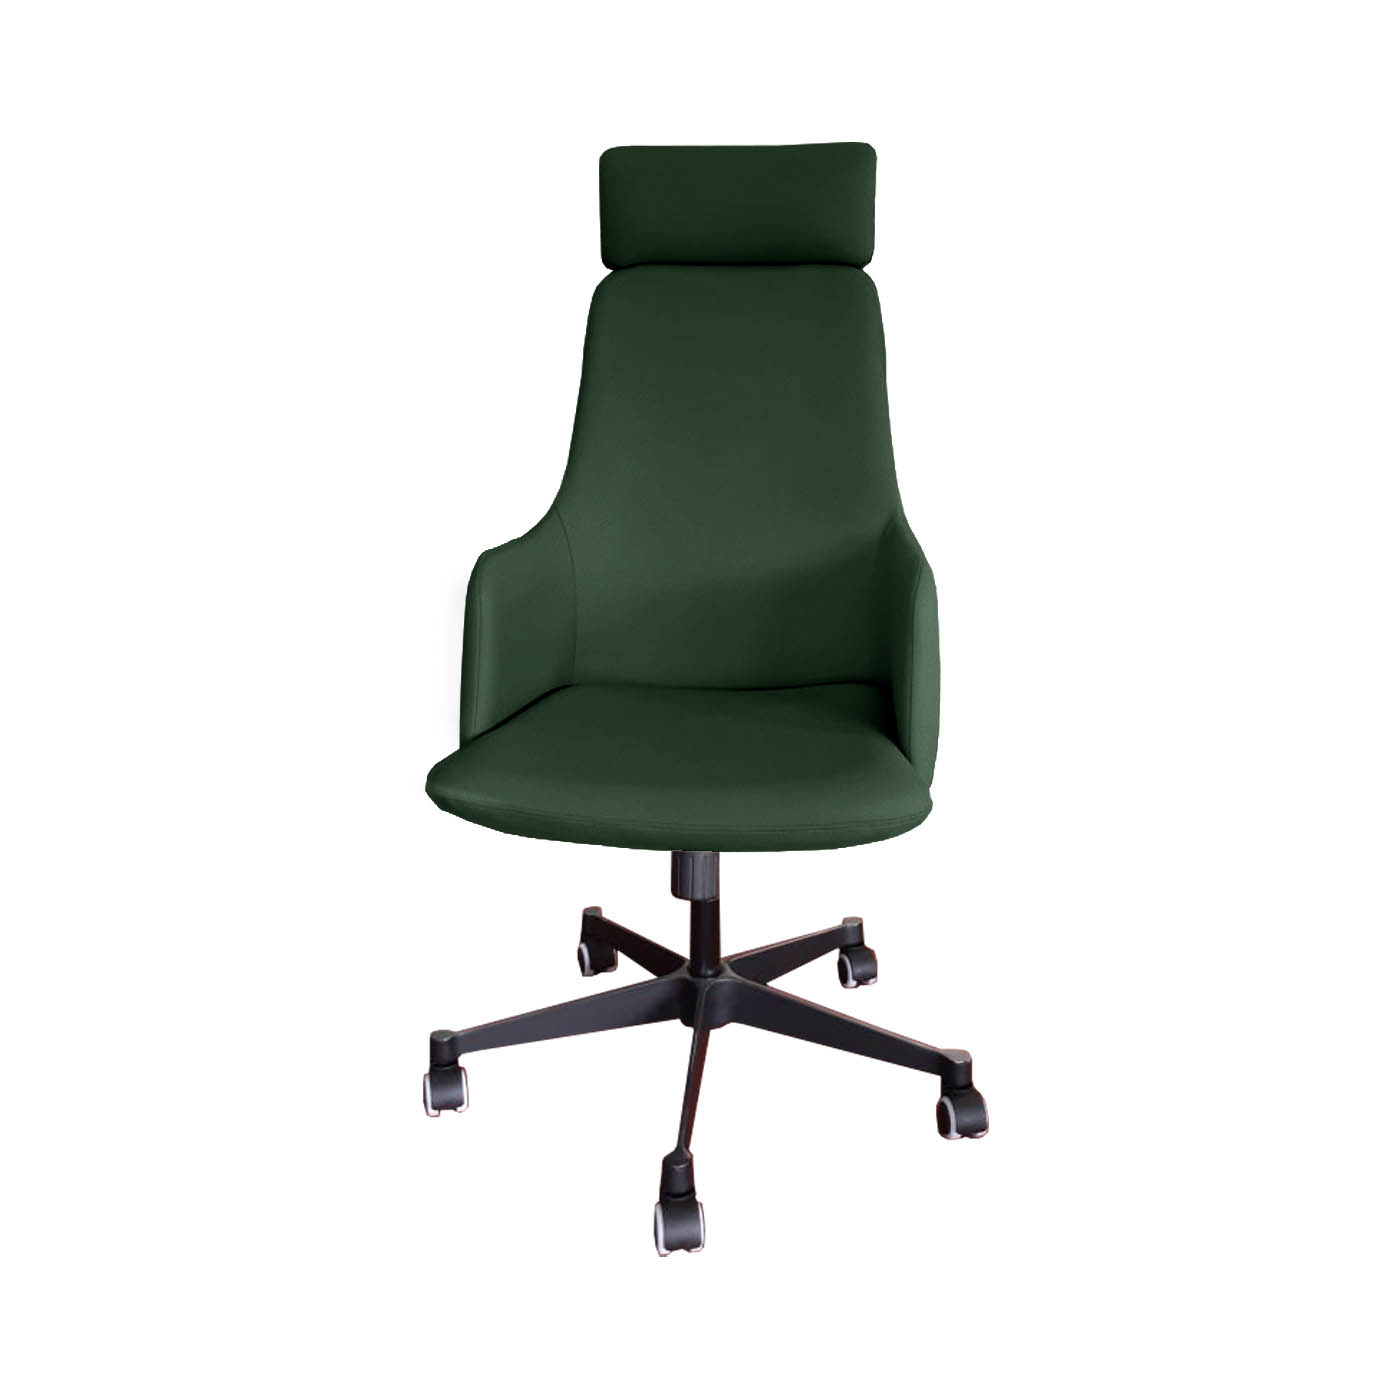 St. Pauli Green Executive Chair